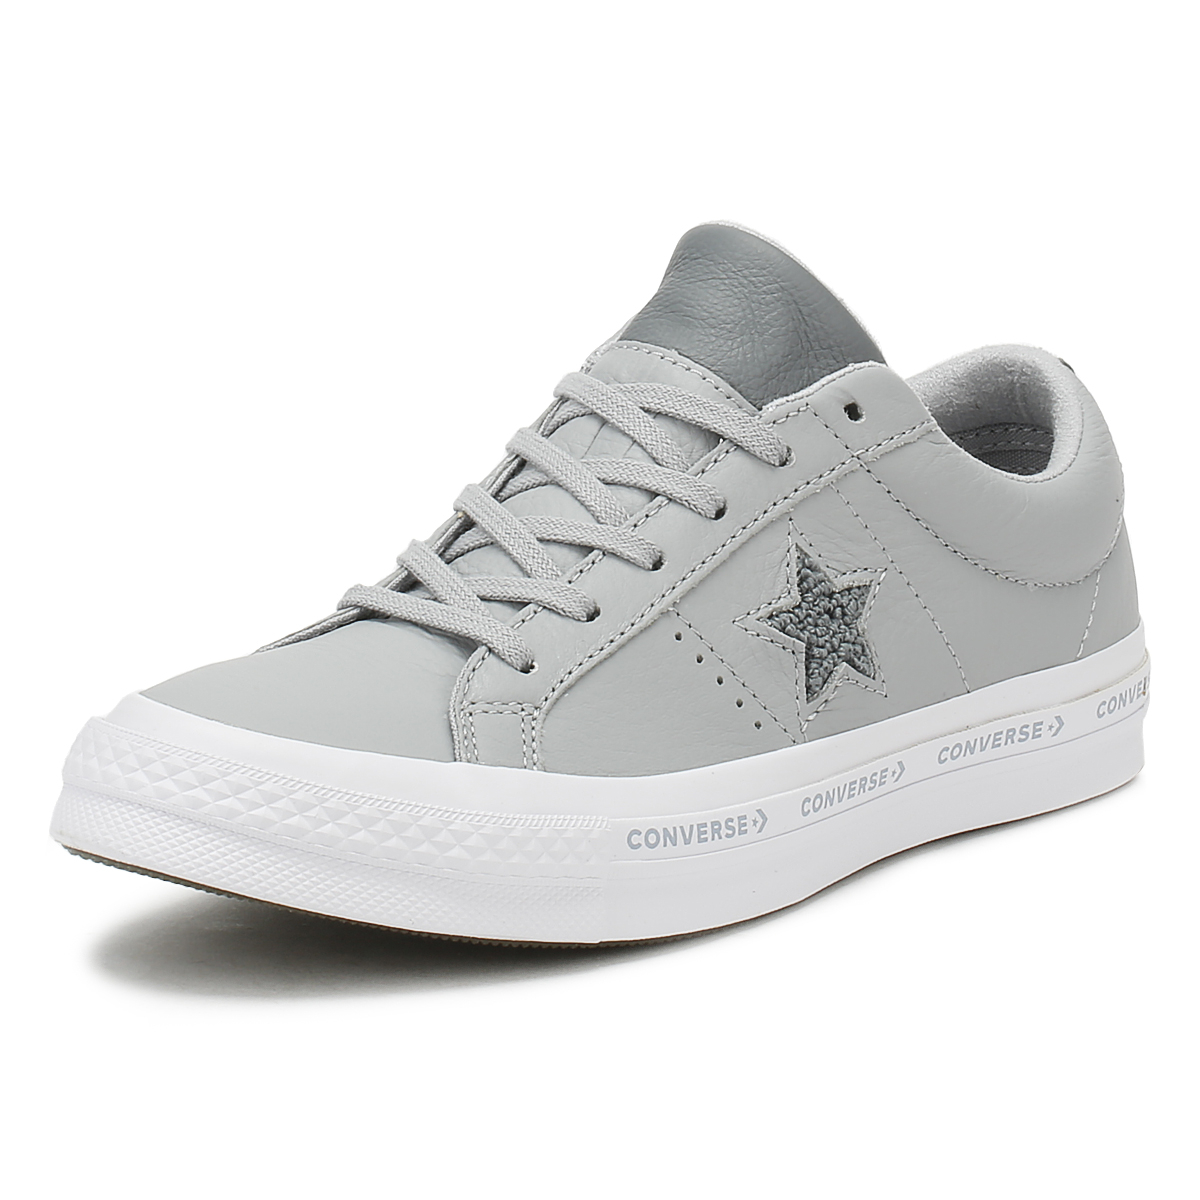 d12d7e9bb88 Details about Converse One Star Mens Ox Trainers Wolf Grey Pinstripe  Leather Skate Shoes